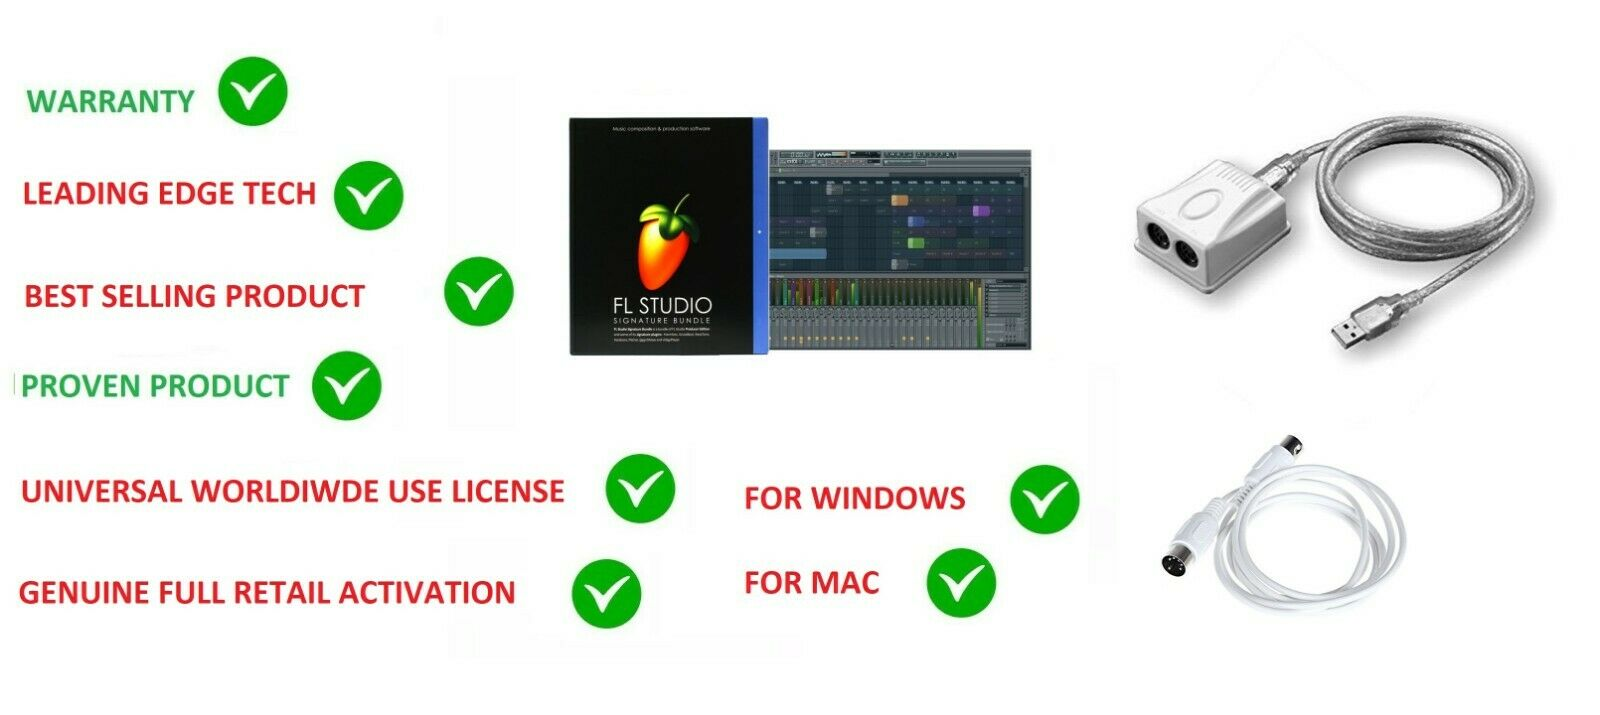 FL STUDIO 20 FRUITY LOOPS SIGNATURE MUSIC SOFTWARE WIN & MAC+MIDI-PLUS INTERFACE